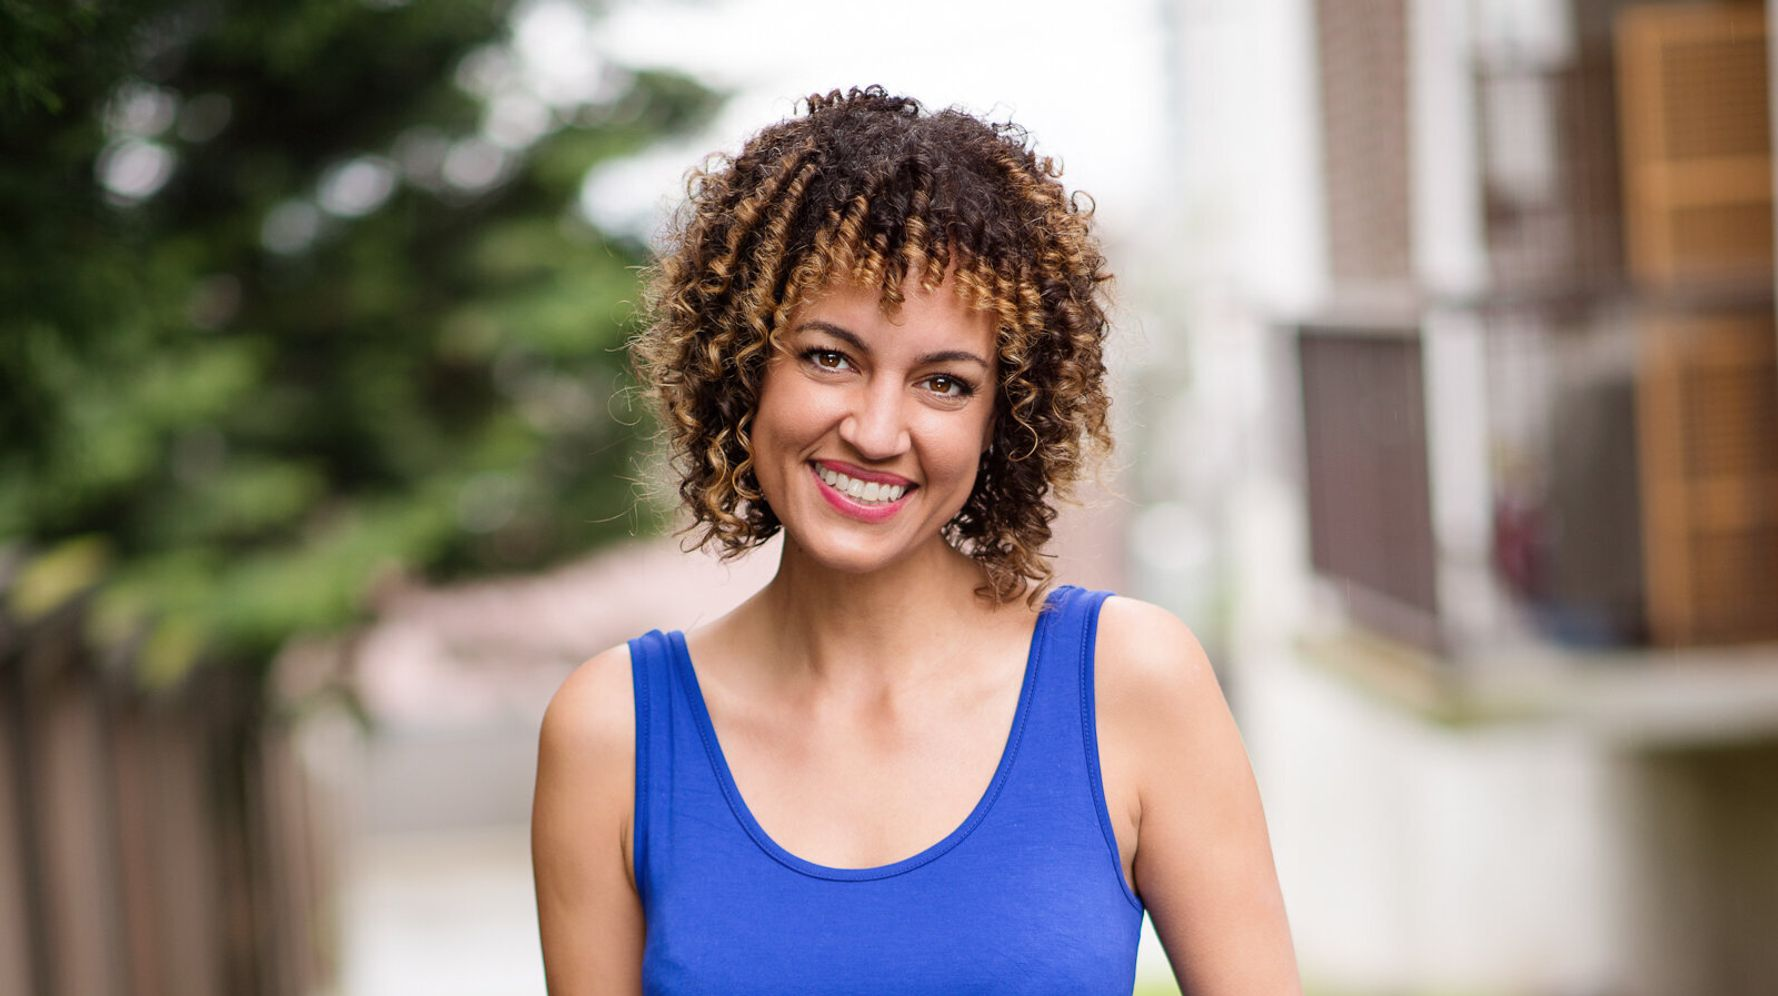 I'm Mixed-Race And Have White Parents. Here's What My Hair Taught Me About My Culture.